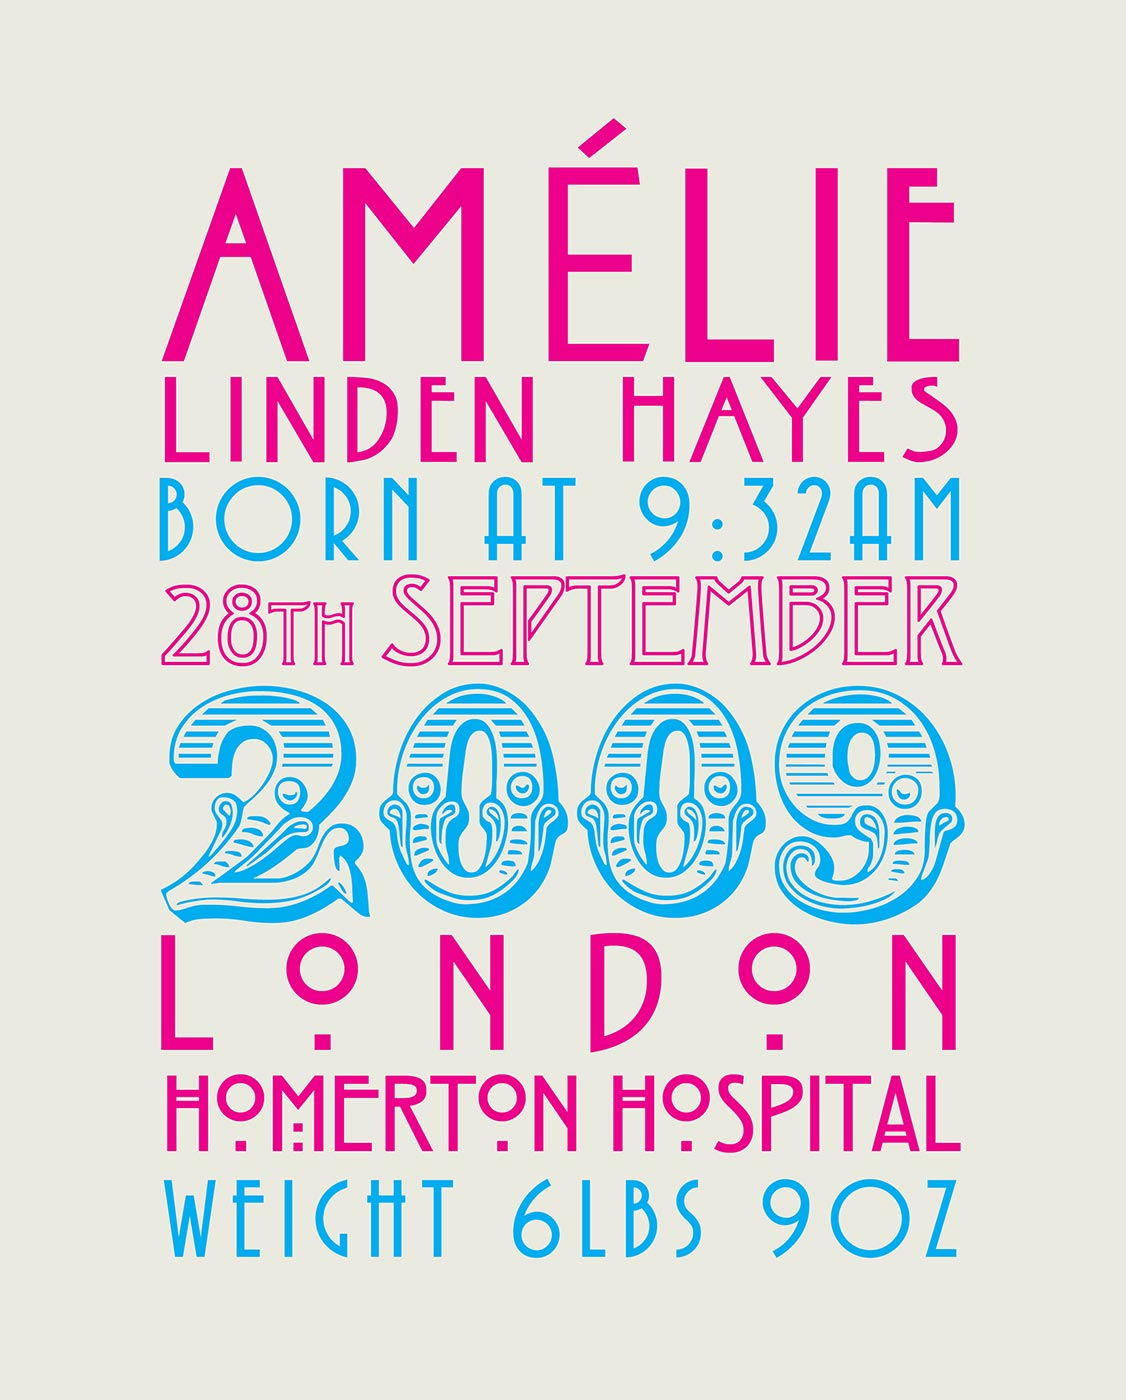 Amelie Birth Print: By Factory, Digital Agency In Manchester